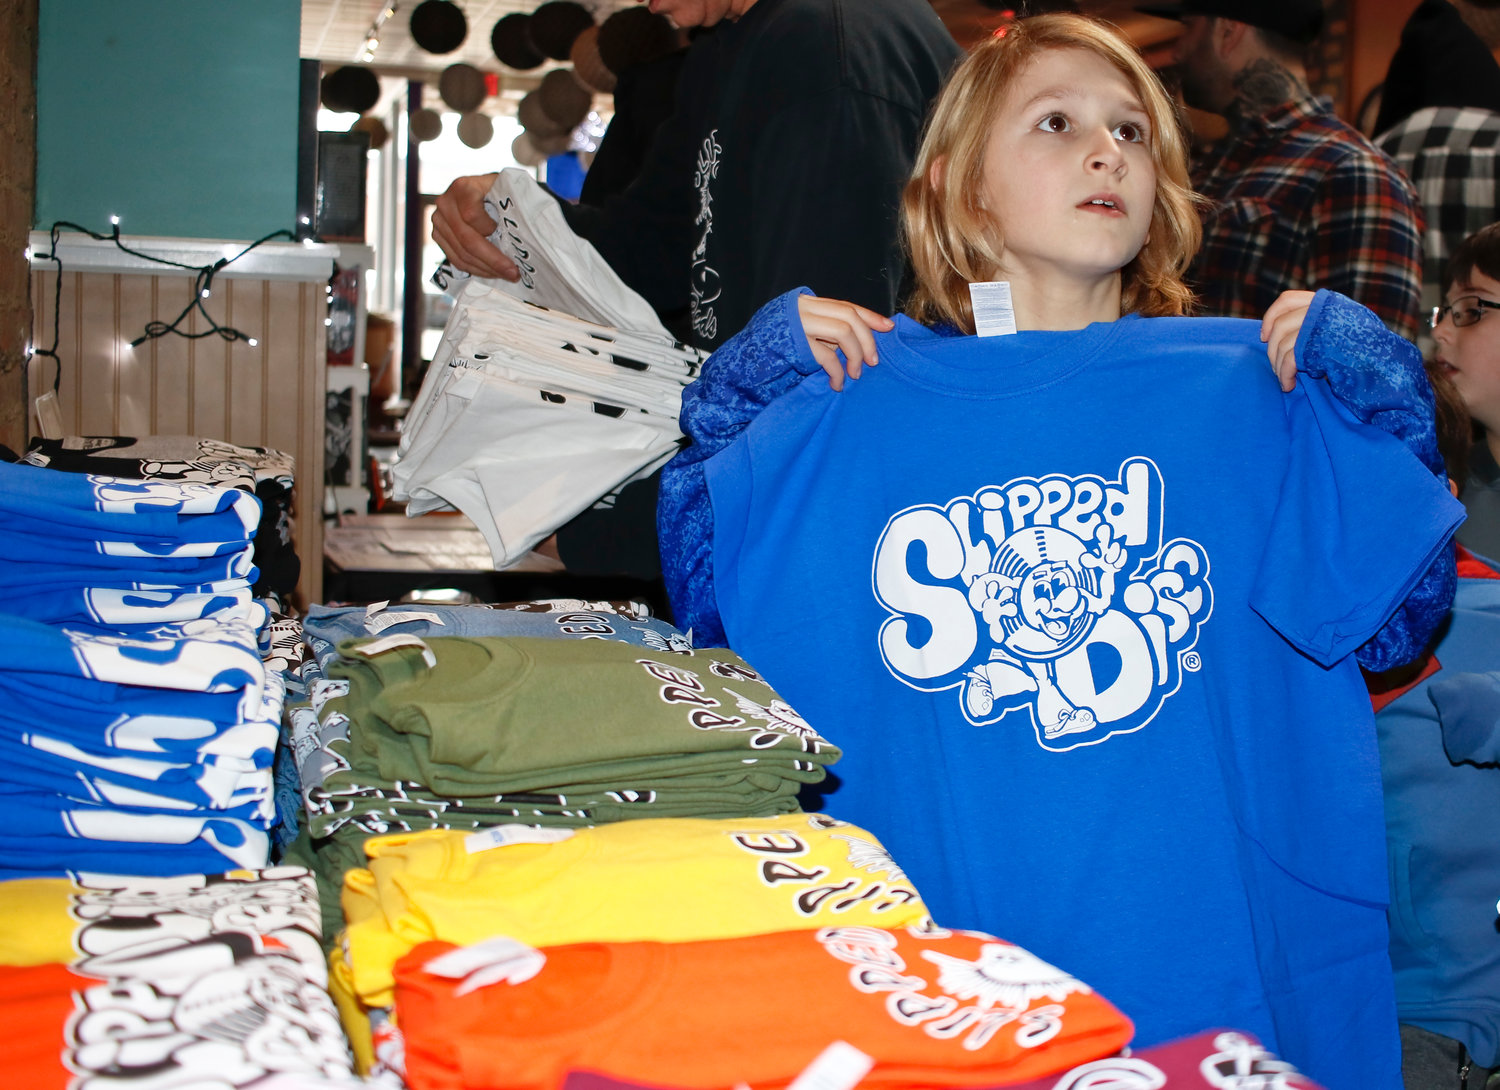 Eight-year-old Luke Healy picked out a retro Slipped Disc T-shirt. The legendary record shop returned to Valley Stream for a day at its former location at Sip This.